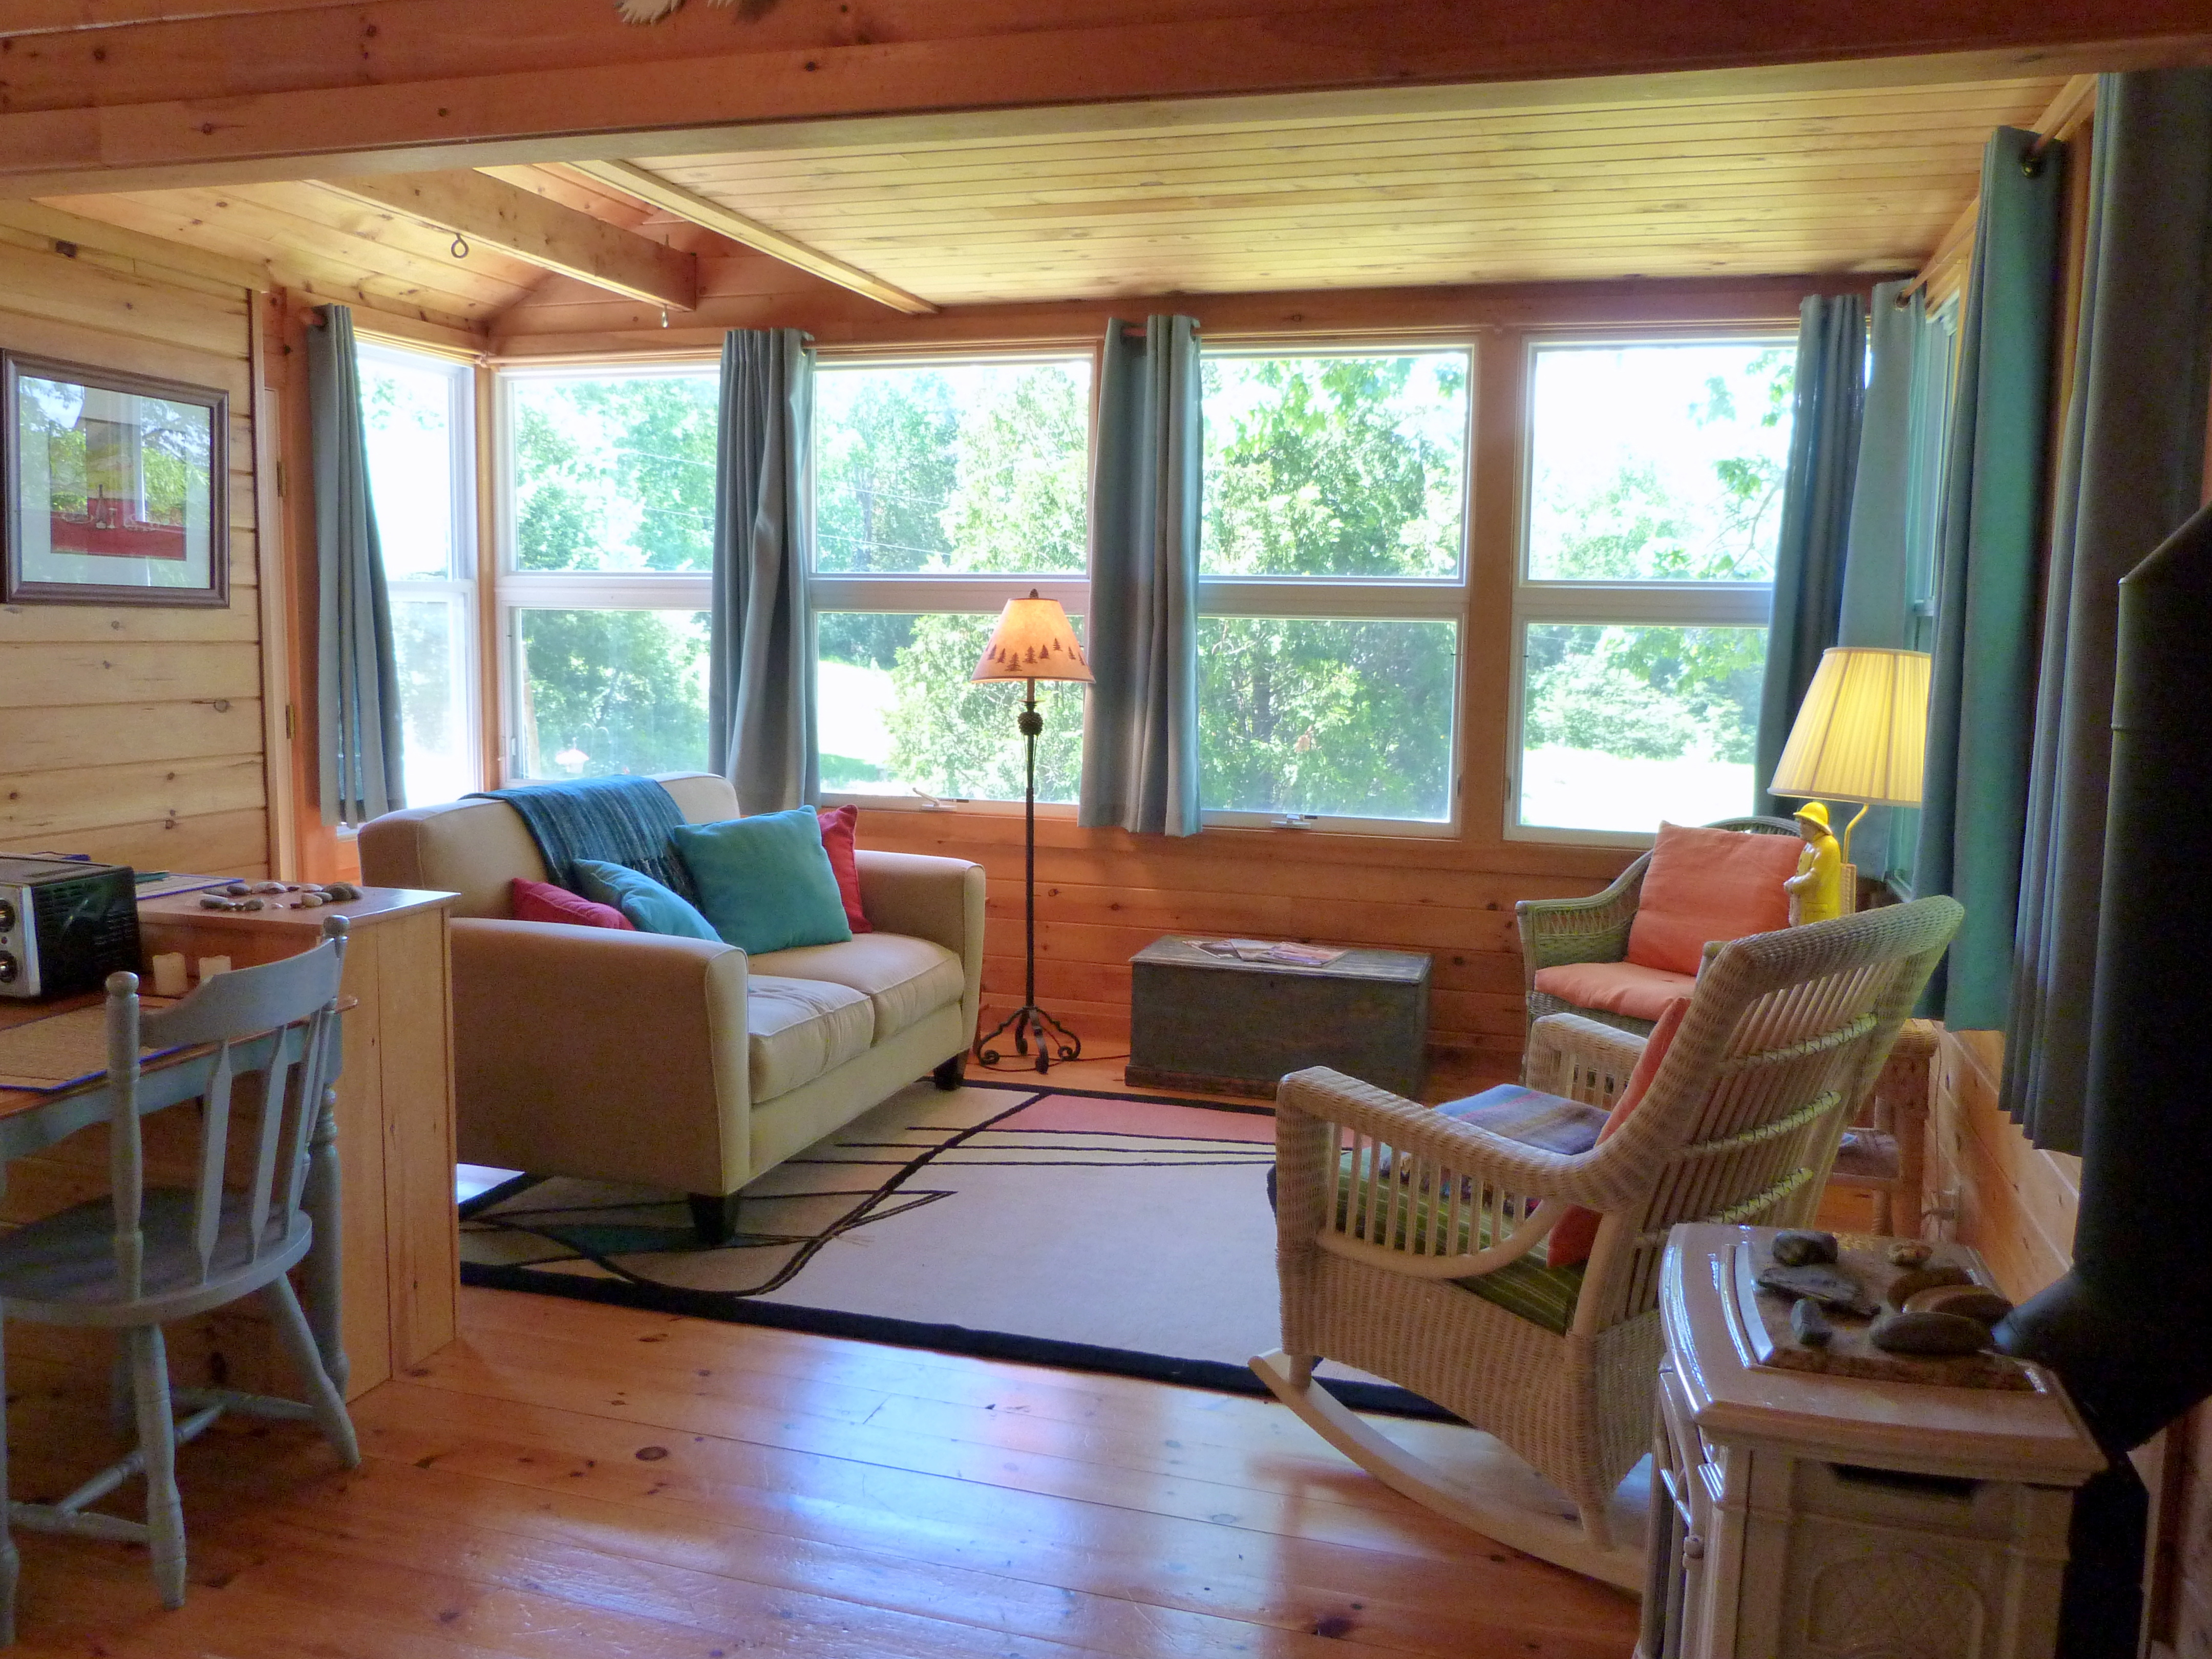 Photo: View 2 Of The Living Space At Cottage By The Sea